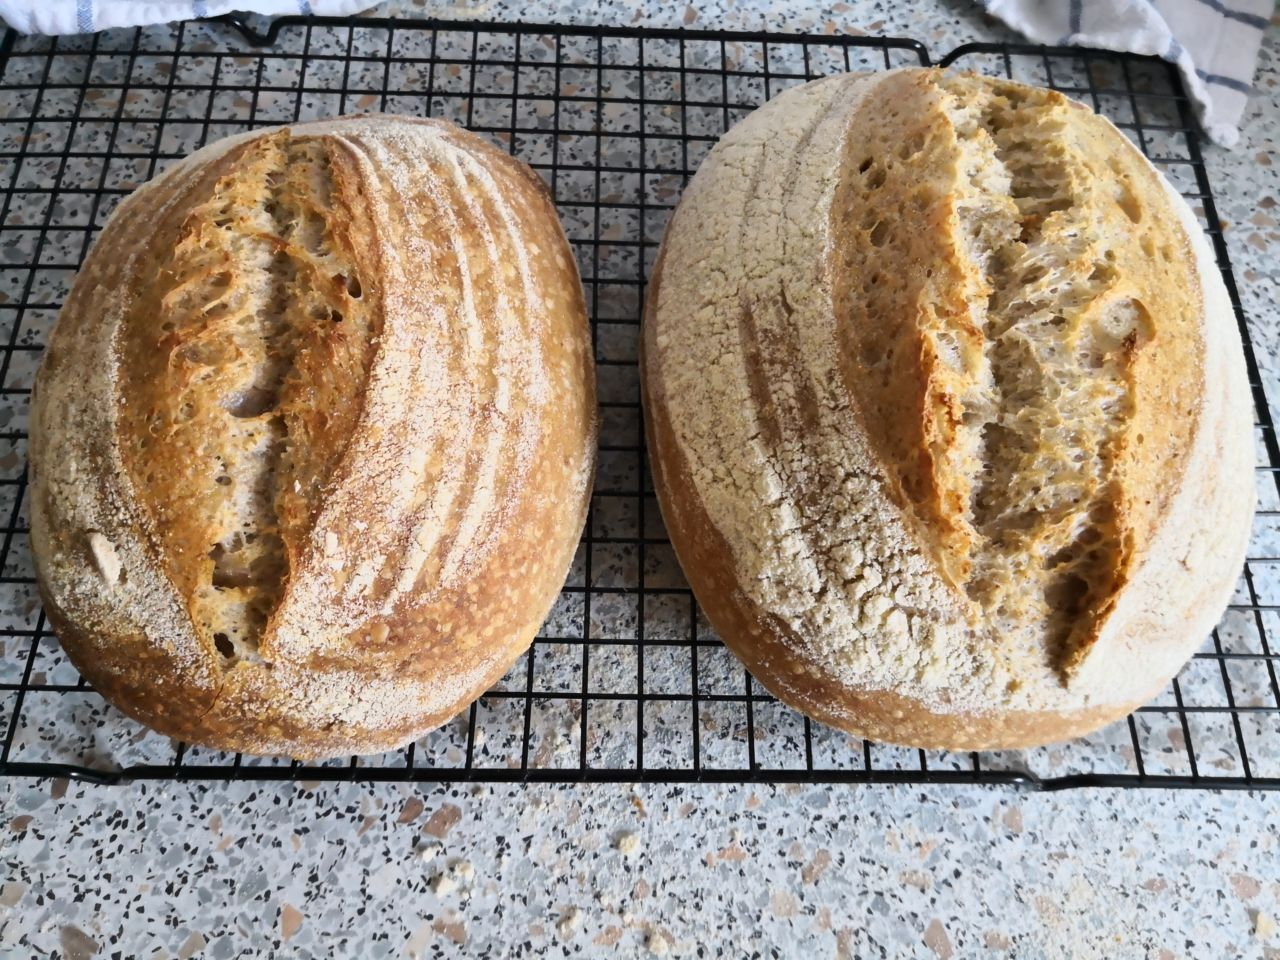 Sourdough bread. Homemade and just out of the oven.